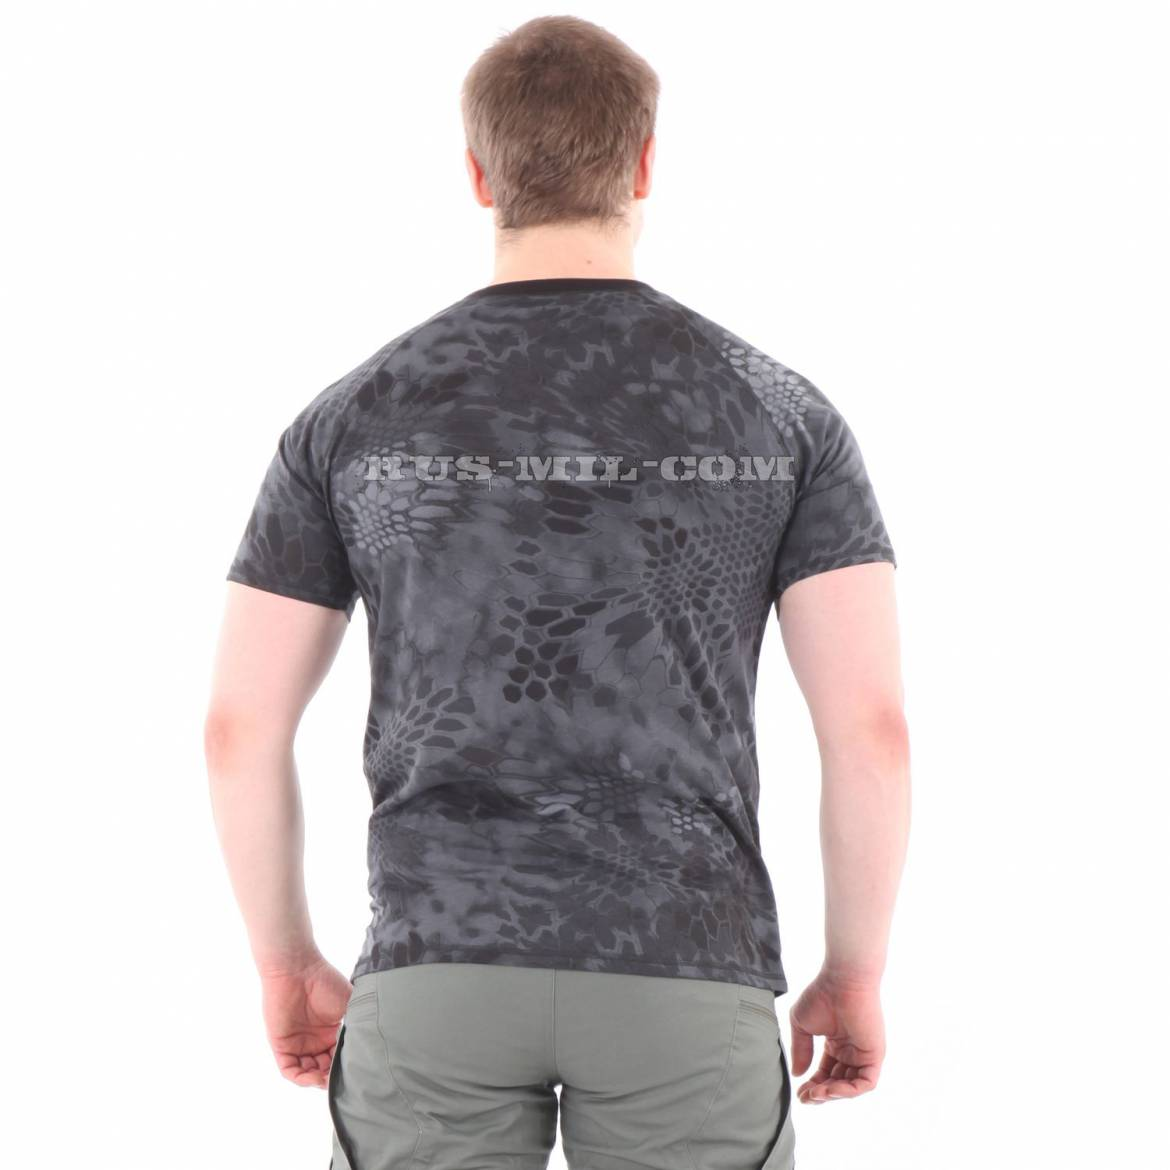 Russian-Cotton-T-Shirt-in-Typhon-for-sale.jpg